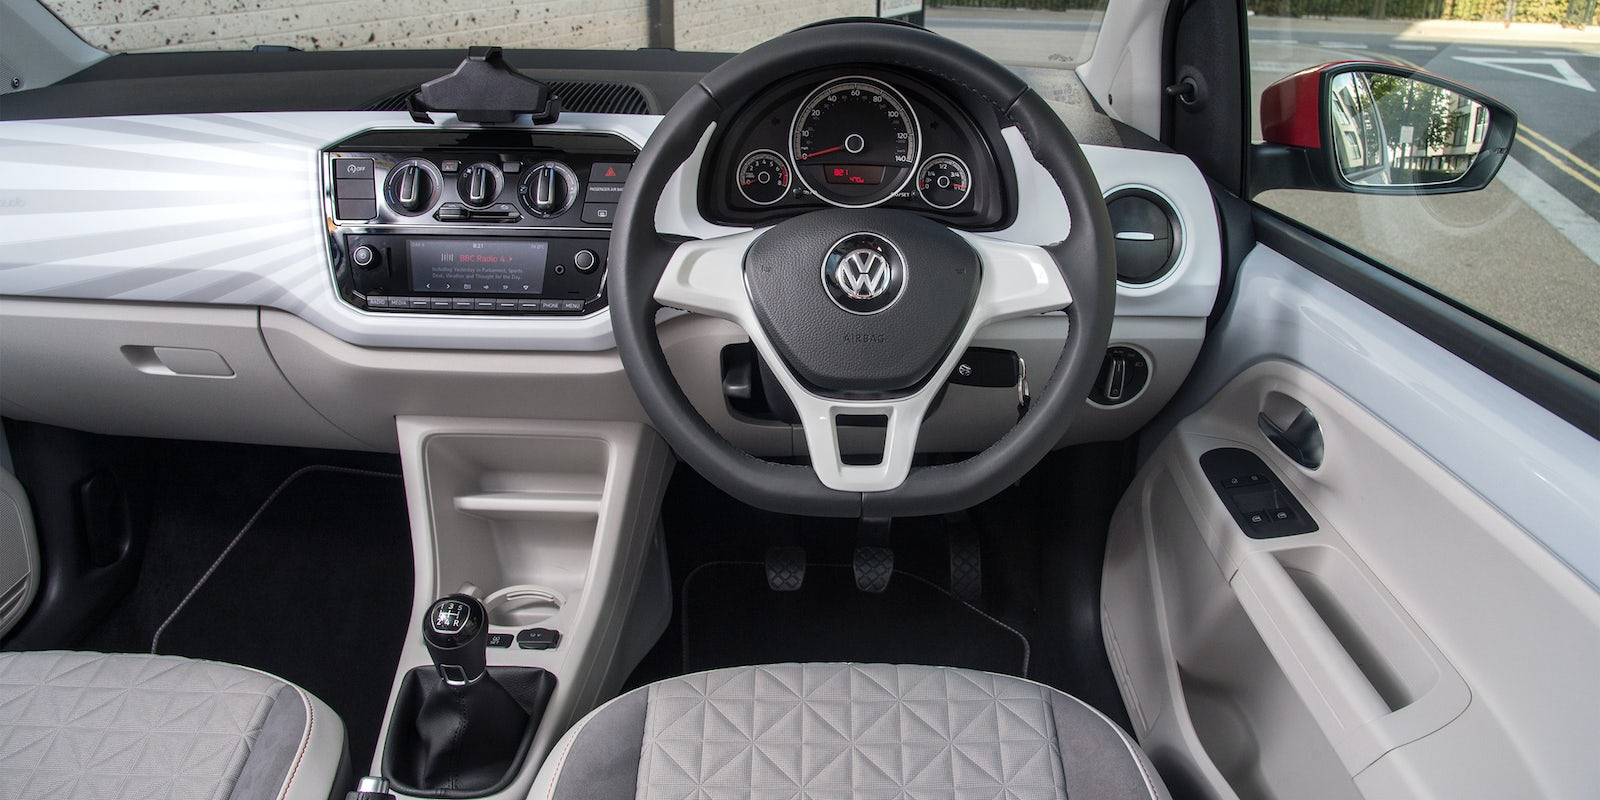 https://carwow-uk-wp-2.imgix.net/VW-up-interior-5.jpg?ixlib=rb-1.1.0&fit=crop&w=1600&h=800&q=60&cs=tinysrgb&auto=format